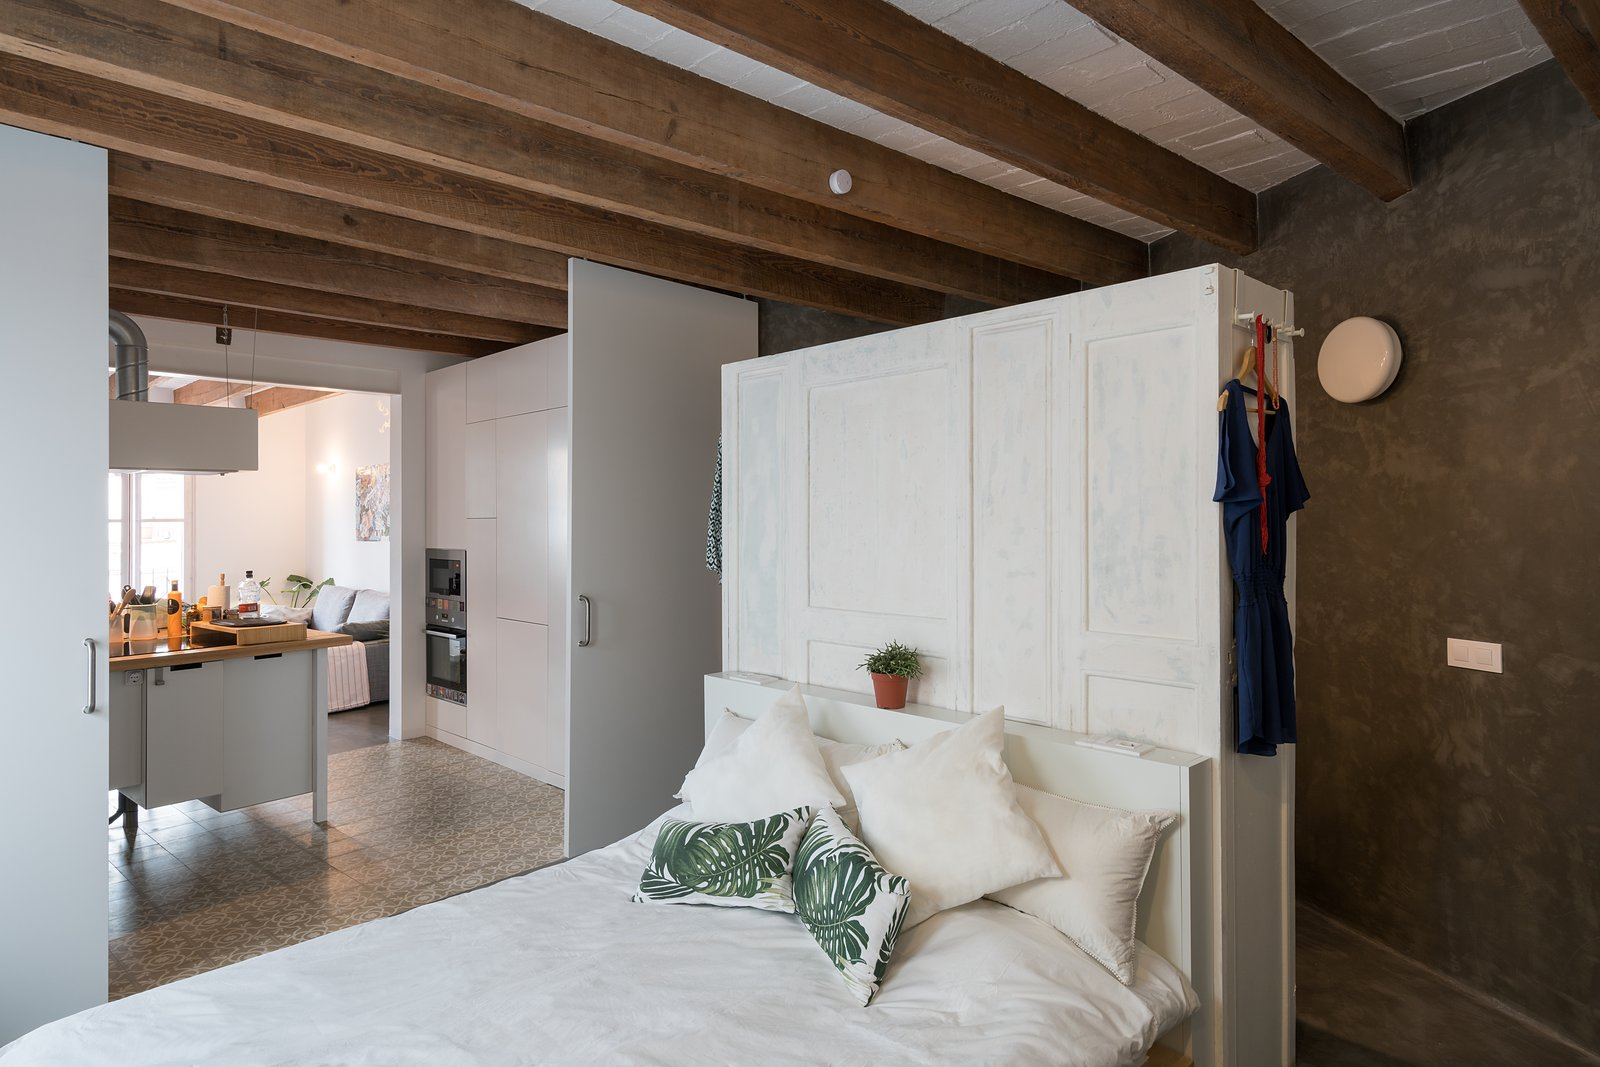 Bedroom Old Town Refurbishment by Habitan Architects